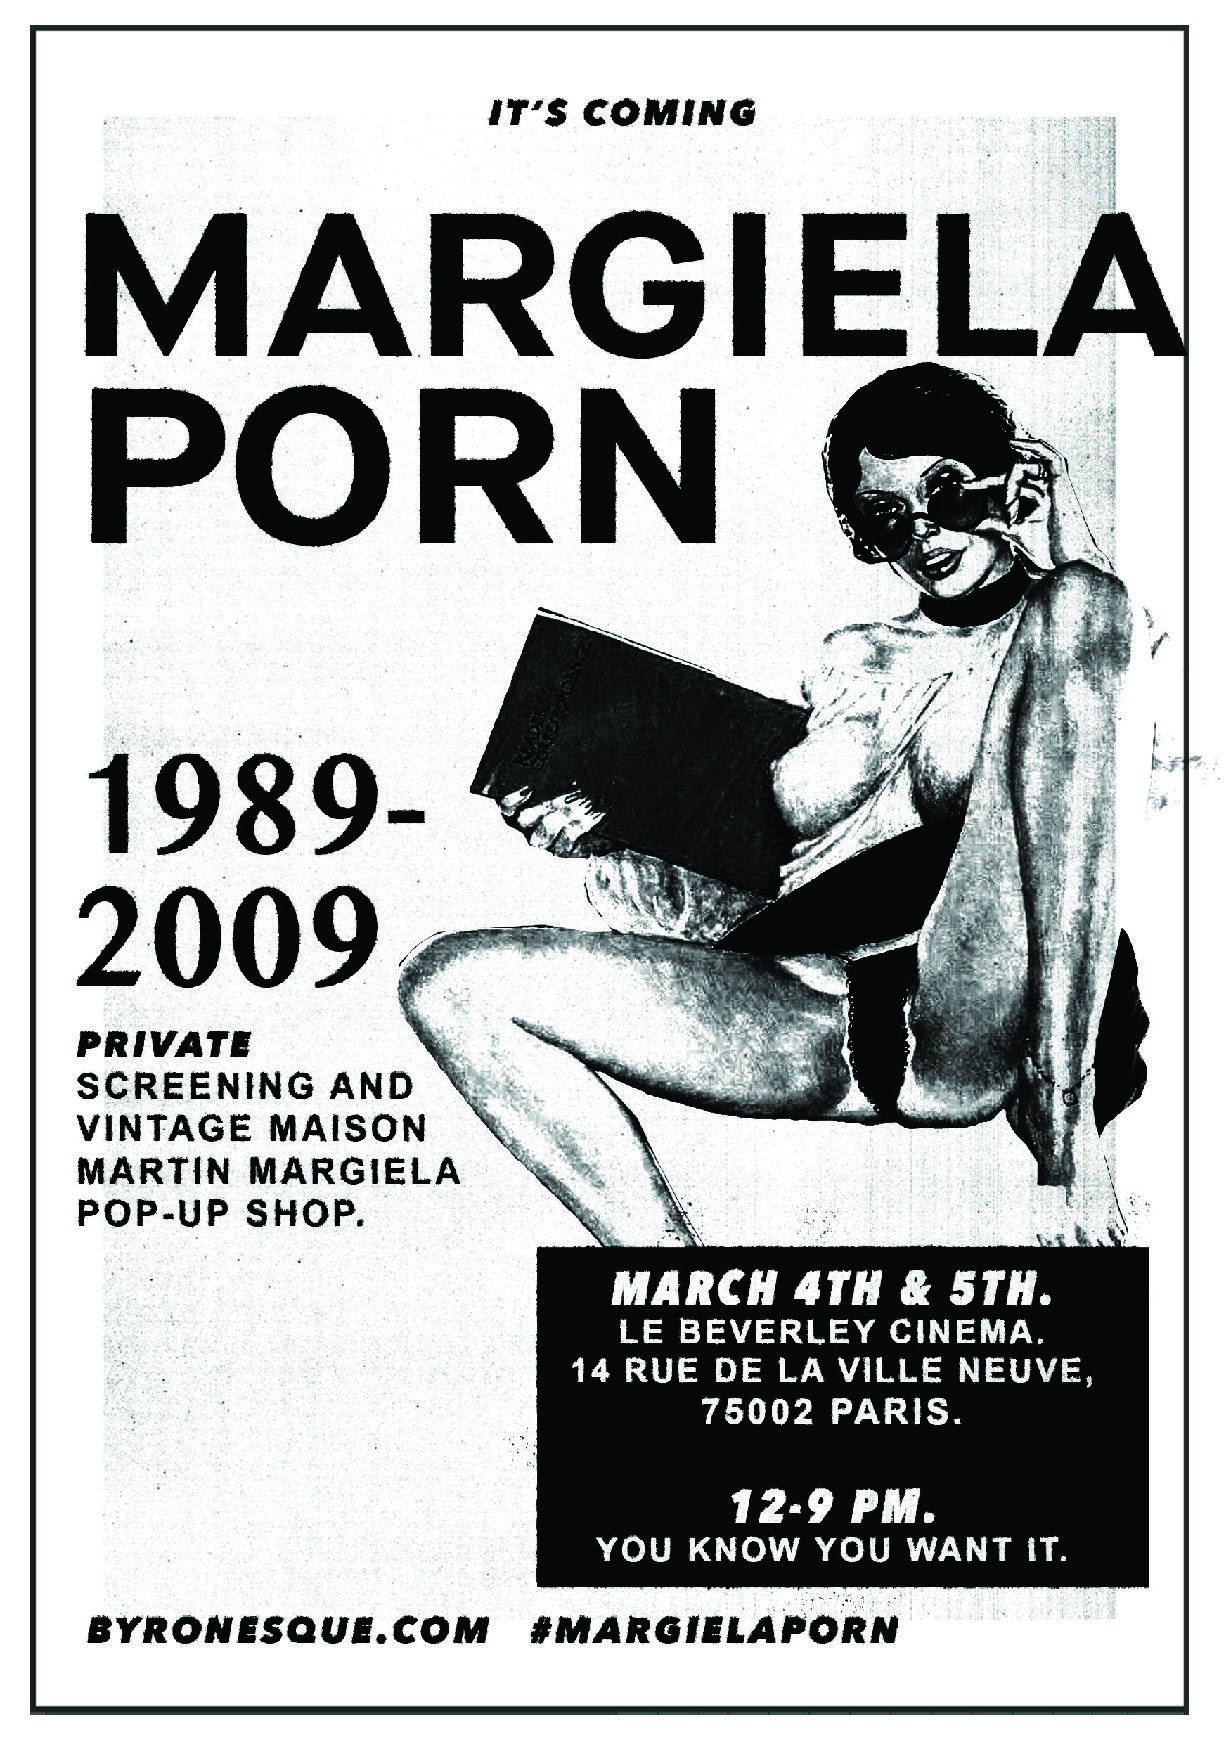 vintage sex That demand is undeniable. So they've collected a greatest hits collection  of the best of Margiela to celebrate that original. Not that it's been easy  to ...